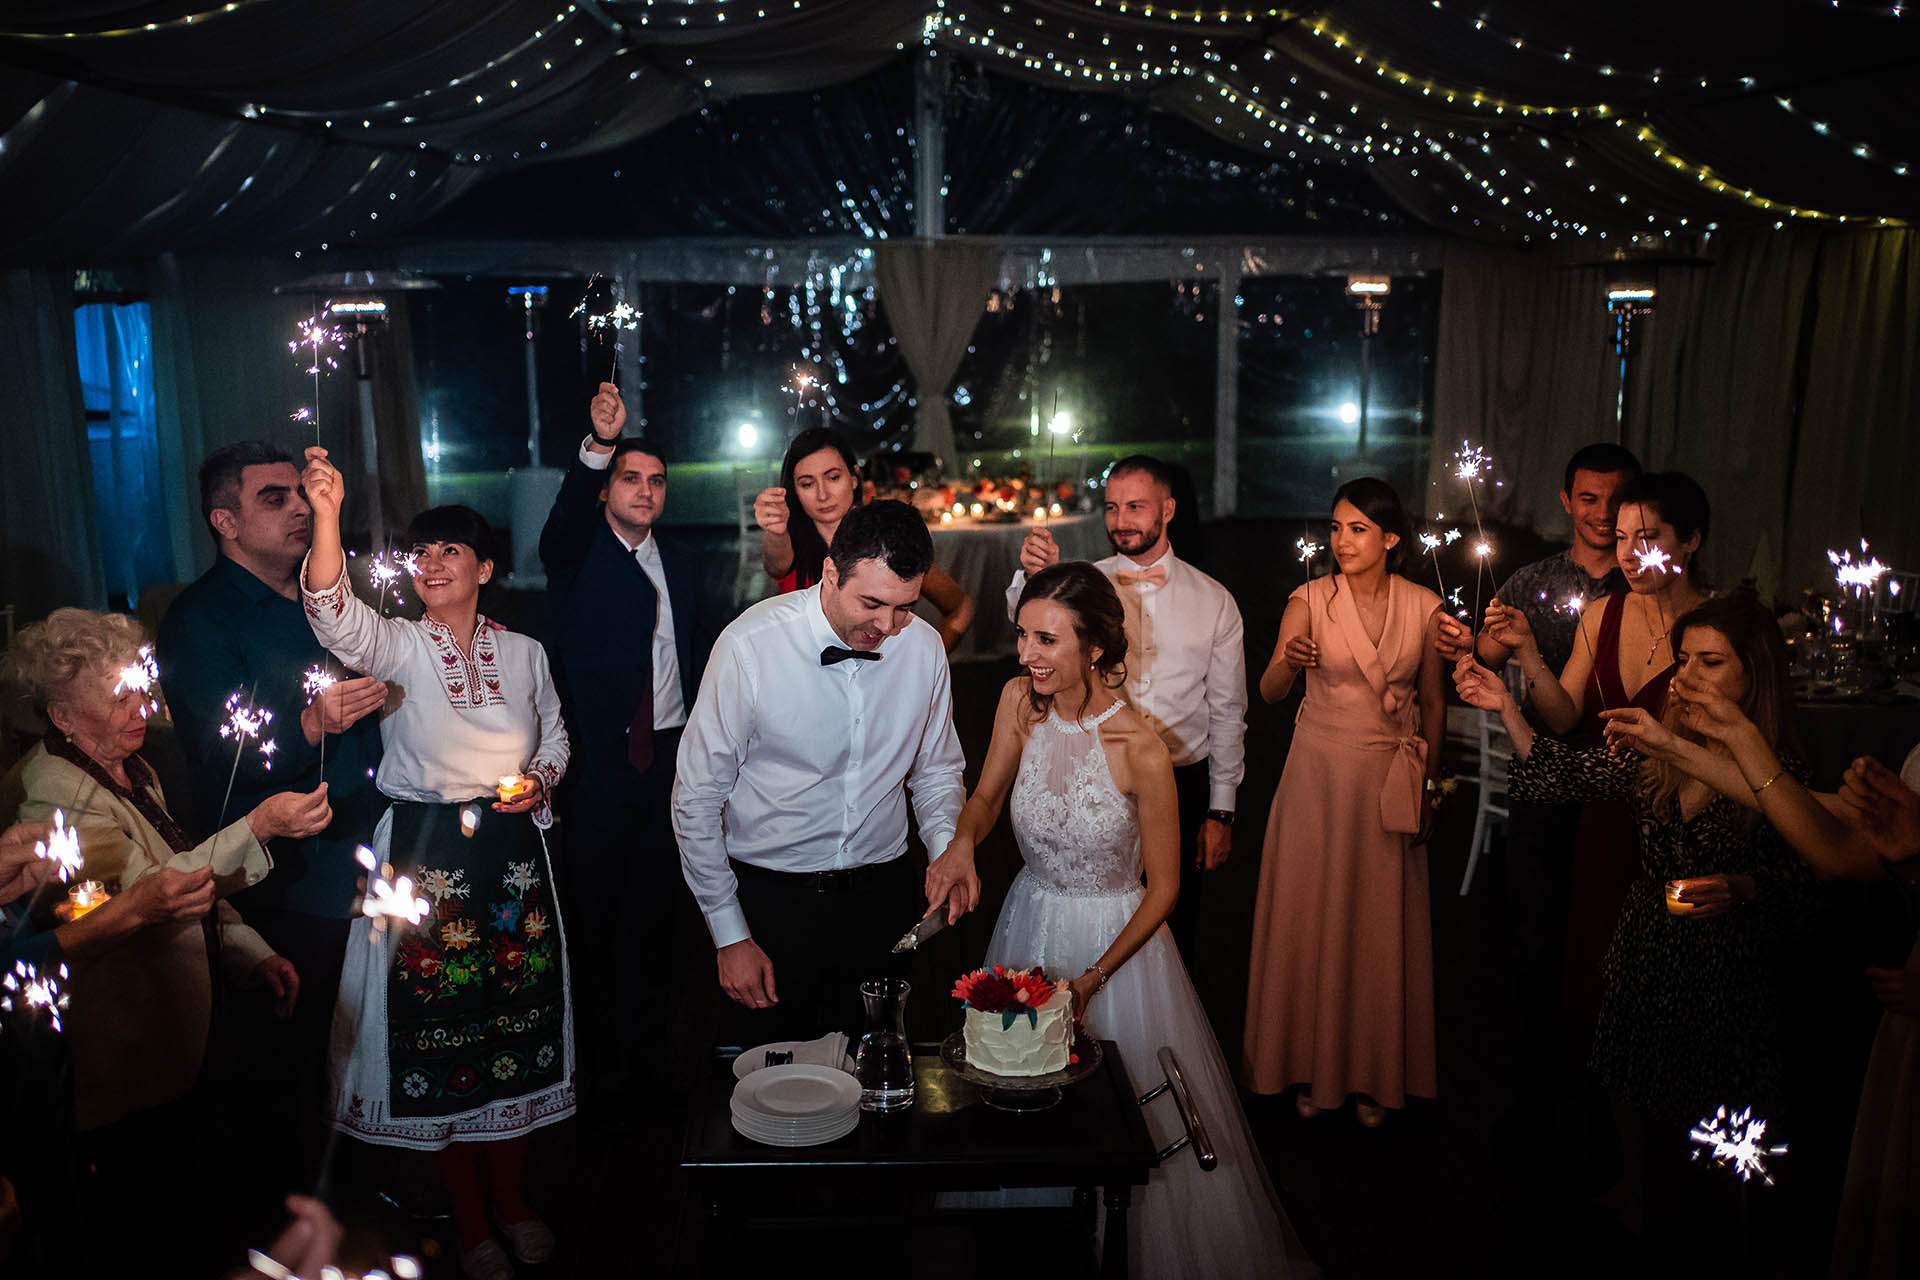 Bulgaria Villa Ekaterina - Wedding Photographer | The wedding guests light the way with sparklers